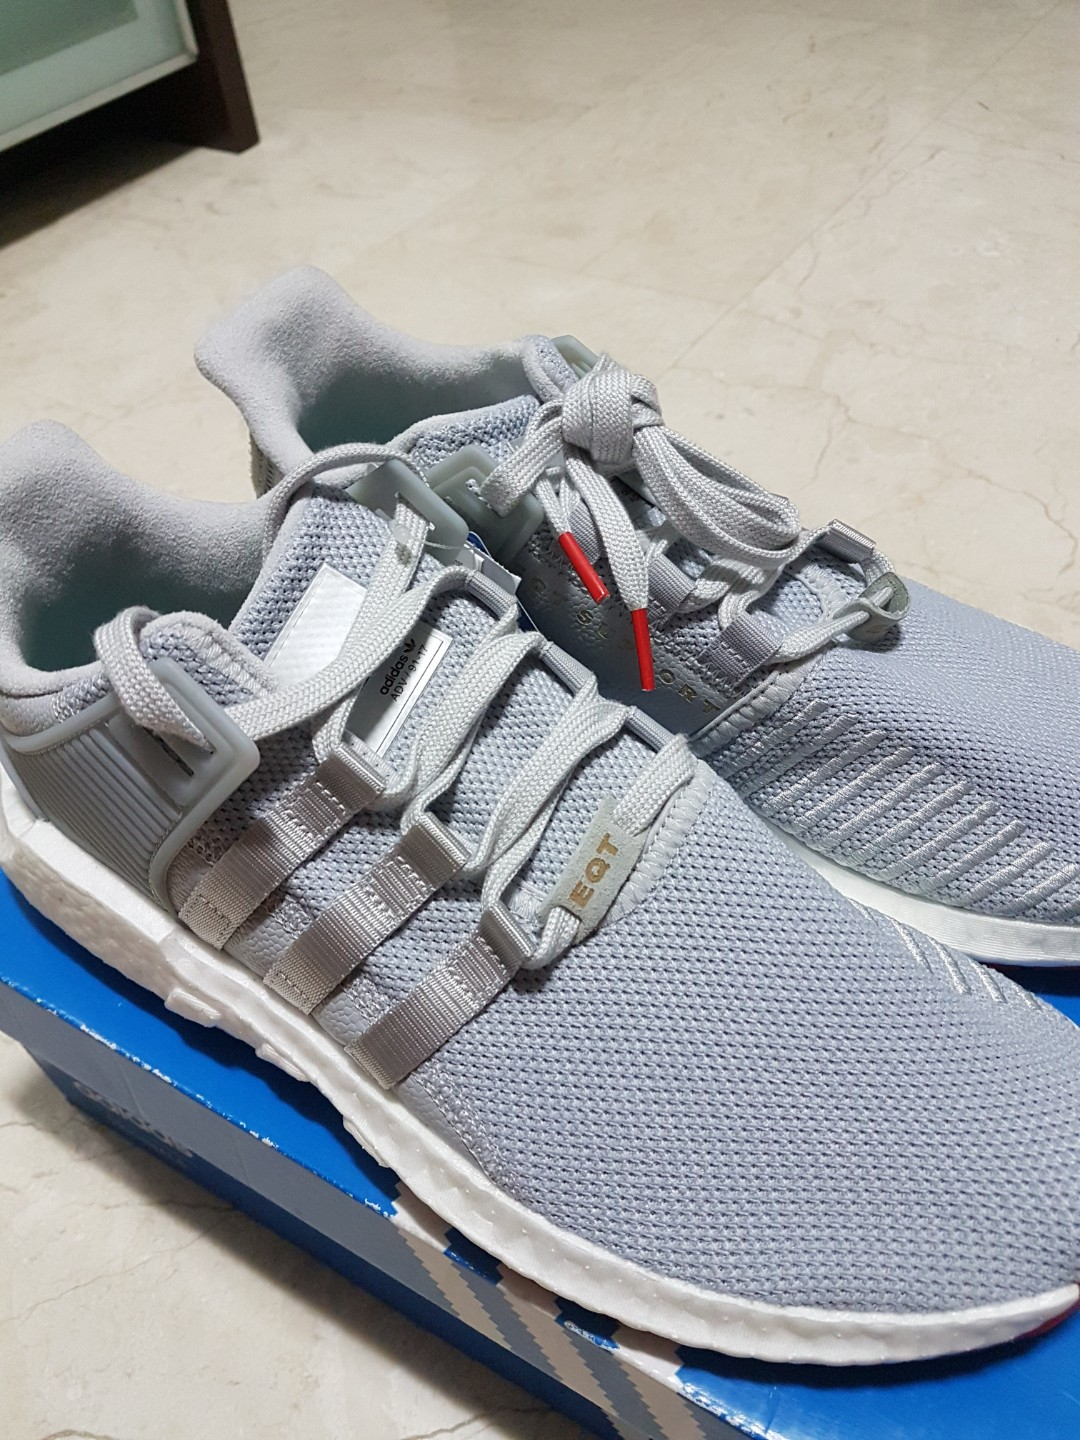 new styles 282dd fd92f Adidas EQT Support 9317 Matte Silver  White, Mens Fashion, Footwear,  Sneakers on Carousell